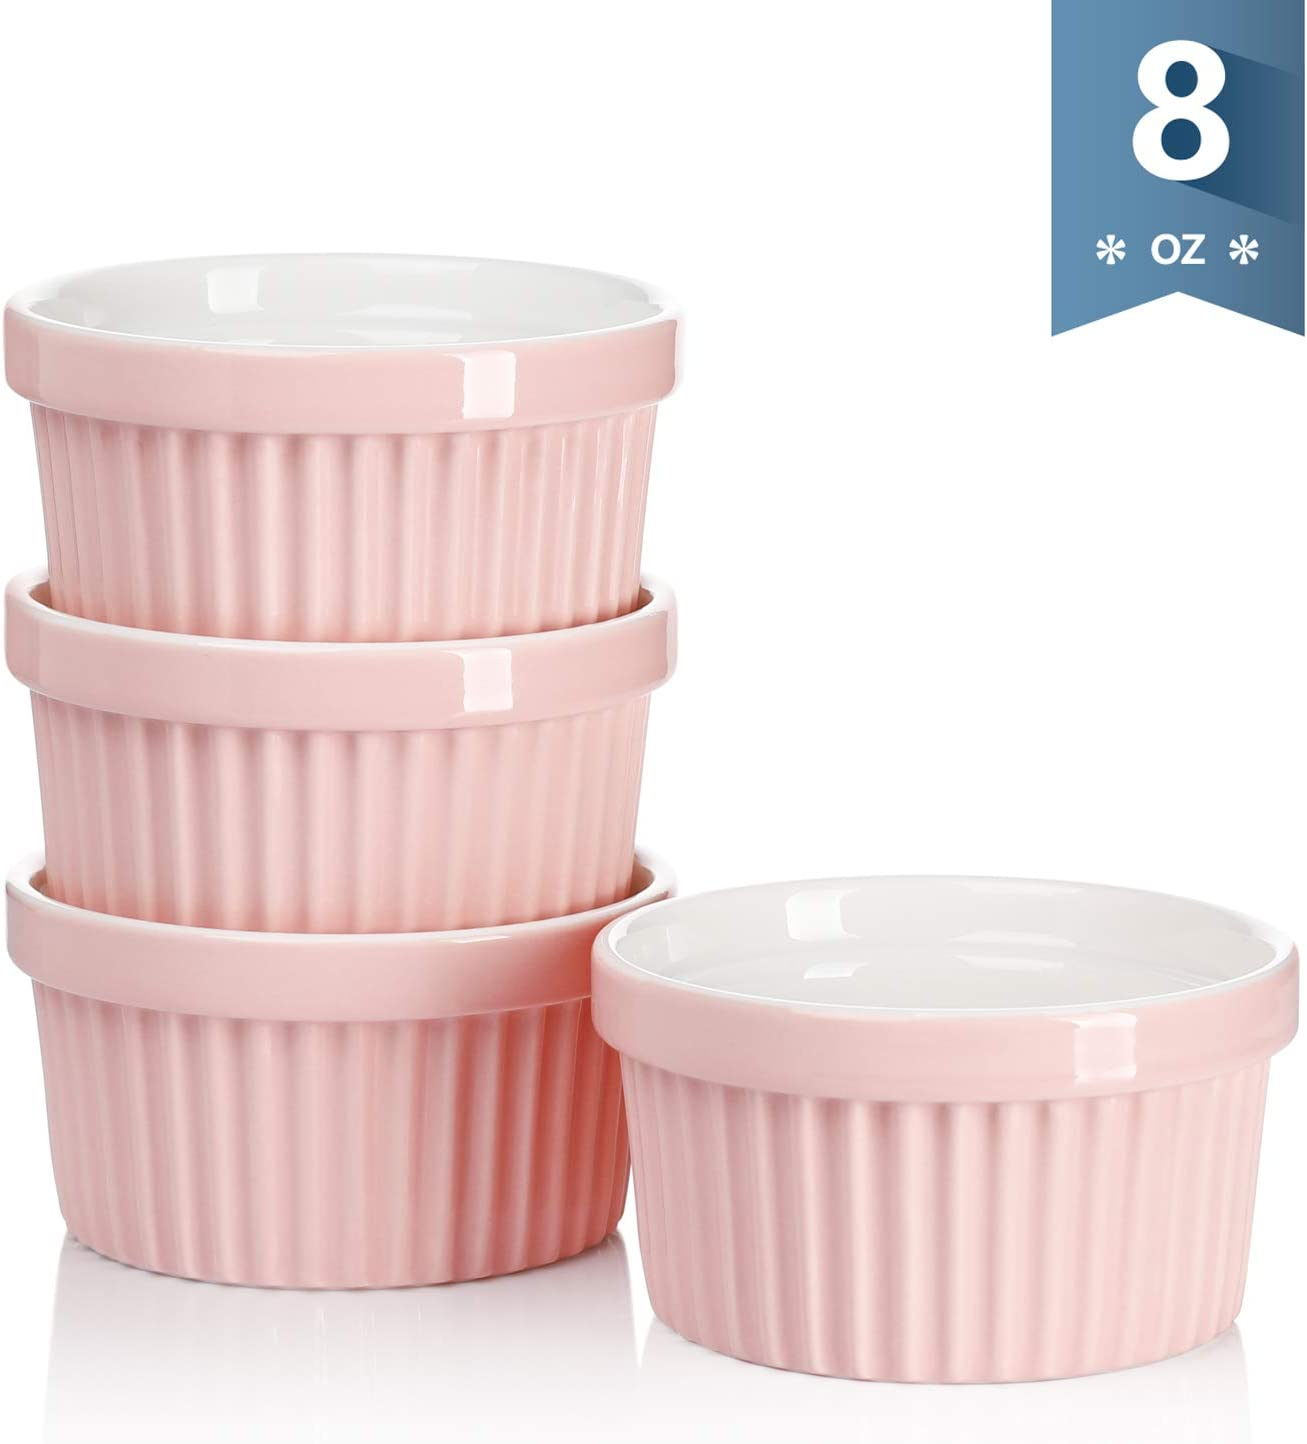 Set of 4 Creme Brulee 8 Ounce for Souffle Sweese 501.108 Porcelain Souffle Dishes Ramekins for Baking Pink